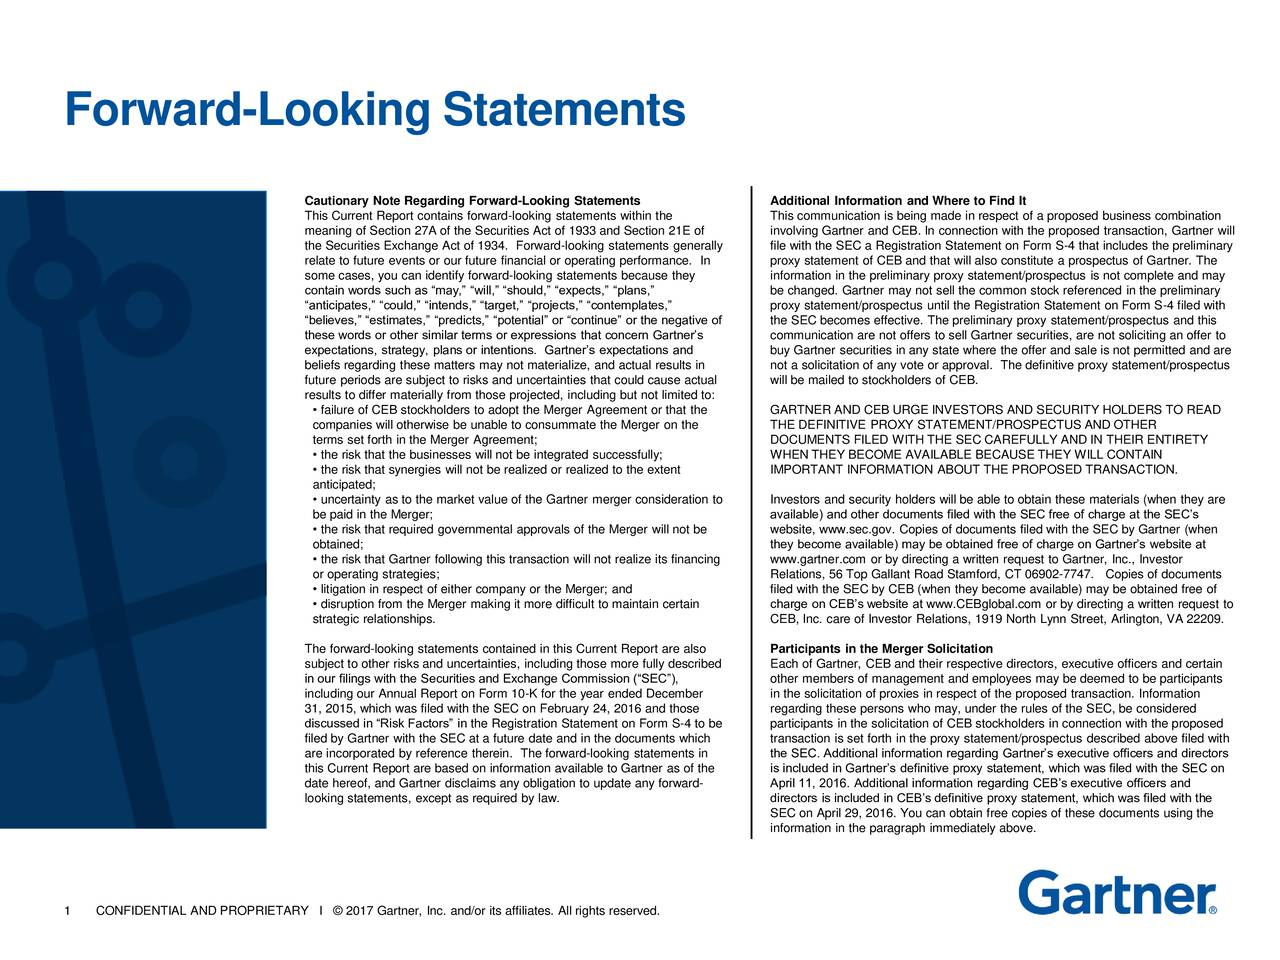 Cautionary Note Regarding Forward-Looking Statements Additional Information and Where to Find It This Current Report contains forward-looking statements within the This communication is being made in respect of a proposed business combination meaning of Section 27A of the Securities Act of 1933 and Section 21E of involving Gartner and CEB. In connection with the proposed transaction, Gartner will the Securities Exchange Act of 1934. Forward-looking statements generally file with the SEC a Registration Statement on Form S-4 that includes the preliminary relate to future events or our future financial or operating performance. In proxy statement of CEB and that will also constitute a prospectus of Gartner. The some cases, you can identify forward-looking statements because they information in the preliminary proxy statement/prospectus is not complete and may contain words such as may, will, should, expects, plans, be changed. Gartner may not sell the common stock referenced in the preliminary anticipates, could, intends, target, projects, contemplates, proxy statement/prospectus until the Registration Statement on Form S-4 filed with believes, estimates, predicts, potential or continue or the negative of the SEC becomes effective. The preliminary proxy statement/prospectus and this these words or other similar terms or expressions that concern Gartners communication are not offers to sell Gartner securities, are not soliciting an offer to expectations, strategy, plans or intentions. Gartners expectations and buy Gartner securities in any state where the offer and sale is not permitted and are beliefs regarding these matters may not materialize, and actual results in not a solicitation of any vote or approval. The definitive proxy statement/prospectus future periods are subject to risks and uncertainties that could cause actual will be mailed to stockholders of CEB. results to differ materially from those projected, including but not limited to: failure of CEB stockholders to adopt the Merger Agreement or that the GARTNER AND CEB URGE INVESTORS AND SECURITY HOLDERS TO READ companies will otherwise be unable to consummate the Merger on the THE DEFINITIVE PROXY STATEMENT/PROSPECTUS AND OTHER terms set forth in the Merger Agreement; DOCUMENTS FILED WITH THE SEC CAREFULLY AND IN THEIR ENTIRETY the risk that the businesses will not be integrated successfully; WHEN THEY BECOME AVAILABLE BECAUSE THEY WILL CONTAIN the risk that synergies will not be realized or realized to the extent IMPORTANT INFORMATION ABOUT THE PROPOSED TRANSACTION. anticipated; uncertainty as to the market value of the Gartner merger consideration to Investors and security holders will be able to obtain these materials (when they are be paid in the Merger; available) and other documents filed with the SEC free of charge at the SECs the risk that required governmental approvals of the Merger will not be website, www.sec.gov. Copies of documents filed with the SEC by Gartner (when obtained; they become available) may be obtained free of charge on Gartners website at the risk that Gartner following this transaction will not realize its financingwww.gartner.com or by directing a written request to Gartner, Inc., Investor or operating strategies; Relations, 56 Top Gallant Road Stamford, CT 06902-7747. Copies of documents litigation in respect of either company or the Merger; and filed with the SEC by CEB (when they become available) may be obtained free of disruption from the Merger making it more difficult to maintain certain charge on CEBs website at www.CEBglobal.com or by directing a written request to strategic relationships. CEB, Inc. care of Investor Relations, 1919 North Lynn Street, Arlington, VA 22209. The forward-looking statements contained in this Current Report are also Participants in the Merger Solicitation subject to other risks and uncertainties, including those more fully described Each of Gartner, CEB and their respective directors, executive officers and certain in our filings with the Securities and Exchange Commission (SEC), other members of management and employees may be deemed to be participants including our Annual Report on Form 10-K for the year ended December in the solicitation of proxies in respect of the proposed transaction. Information 31, 2015, which was filed with the SEC on February 24, 2016 and those regarding these persons who may, under the rules of the SEC, be considered discussed in Risk Factors in the Registration Statement on Form S-4 to be participants in the solicitation of CEB stockholders in connection with the proposed filed by Gartner with the SEC at a future date and in the documents which transaction is set forth in the proxy statement/prospectus described above filed with are incorporated by reference therein. The forward-looking statements in the SEC. Additional information regarding Gartners executive officers and directors this Current Report are based on information available to Gartner as of the is included in Gartners definitive proxy statement, which was filed with the SEC on date hereof, and Gartner disclaims any obligation to update any forward- April 11, 2016. Additional information regarding CEBs executive officers and looking statements, except as required by law. directors is included in CEBs definitive proxy statement, which was filed with the SEC on April 29, 2016. You can obtain free copies of these documents using the information in the paragraph immediately above. 1 CONFIDENTIAL AND PROPRIETARY I  2017 Gartner, Inc. and/or its affiliates. All rights reserved.